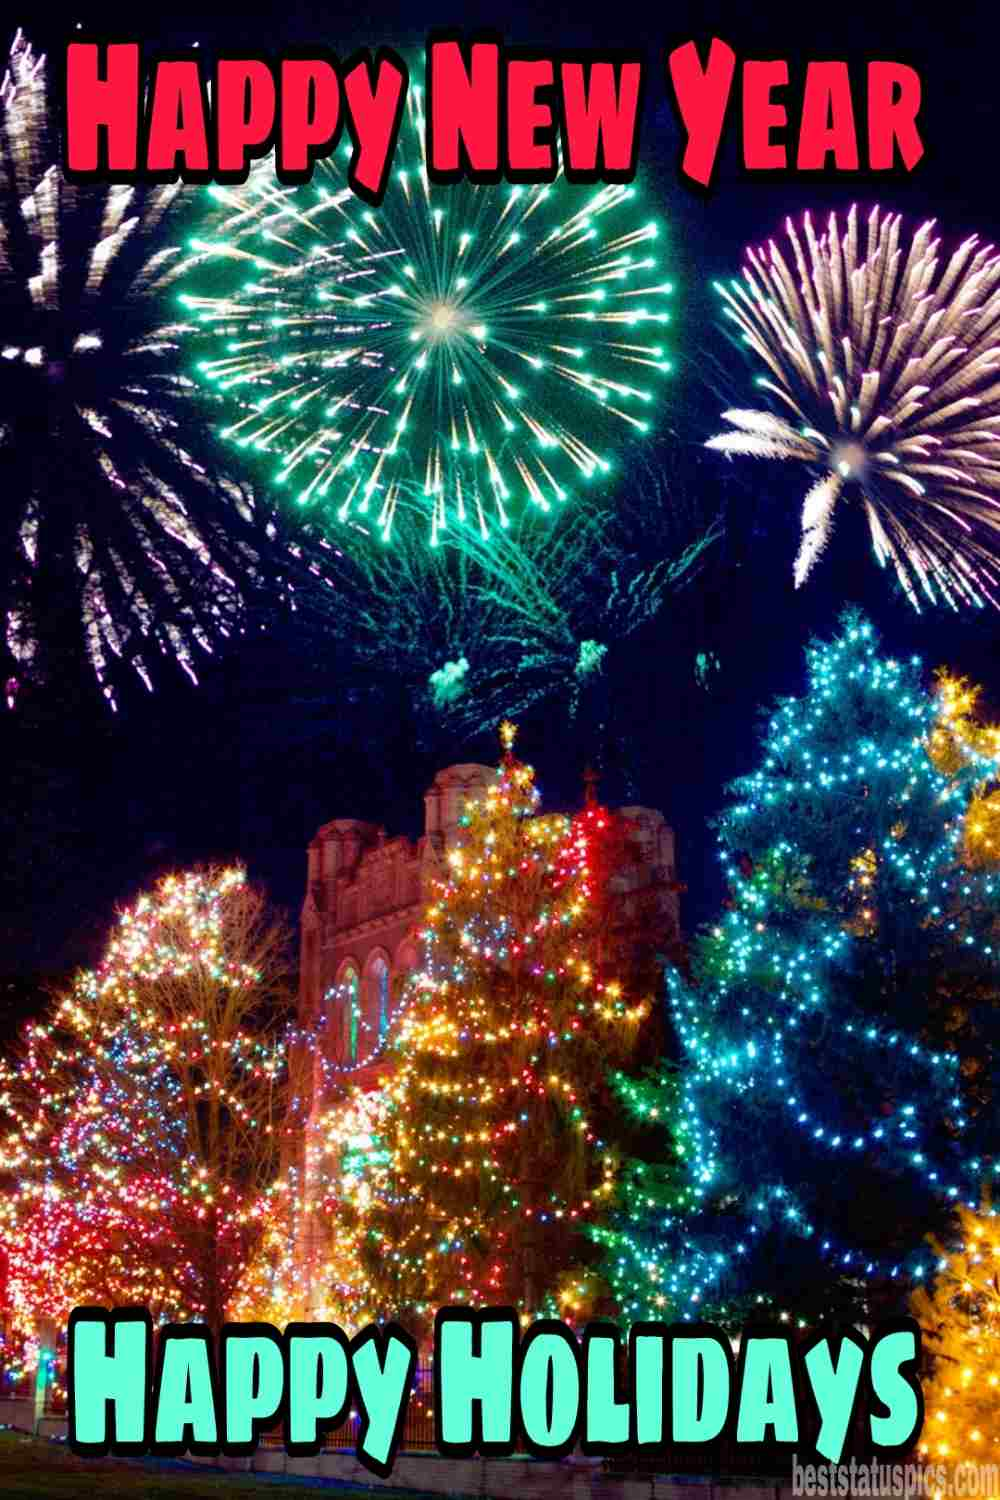 Happy Holidays and Happy New Year 2022 images HD with Christmas tree and fireworks for Instagram story